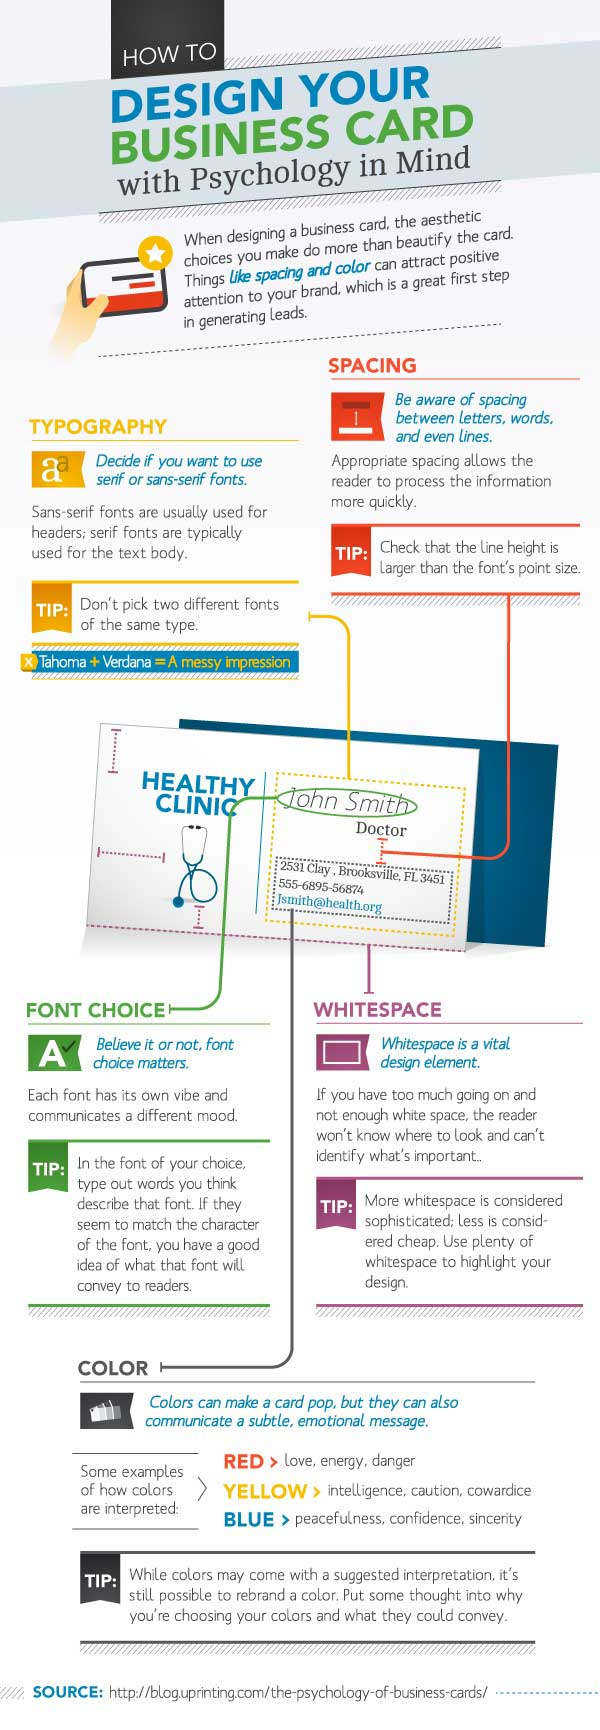 ThePsychologyofBusinessCards The Psychology Of Business Cards [INFOGRAPHIC]